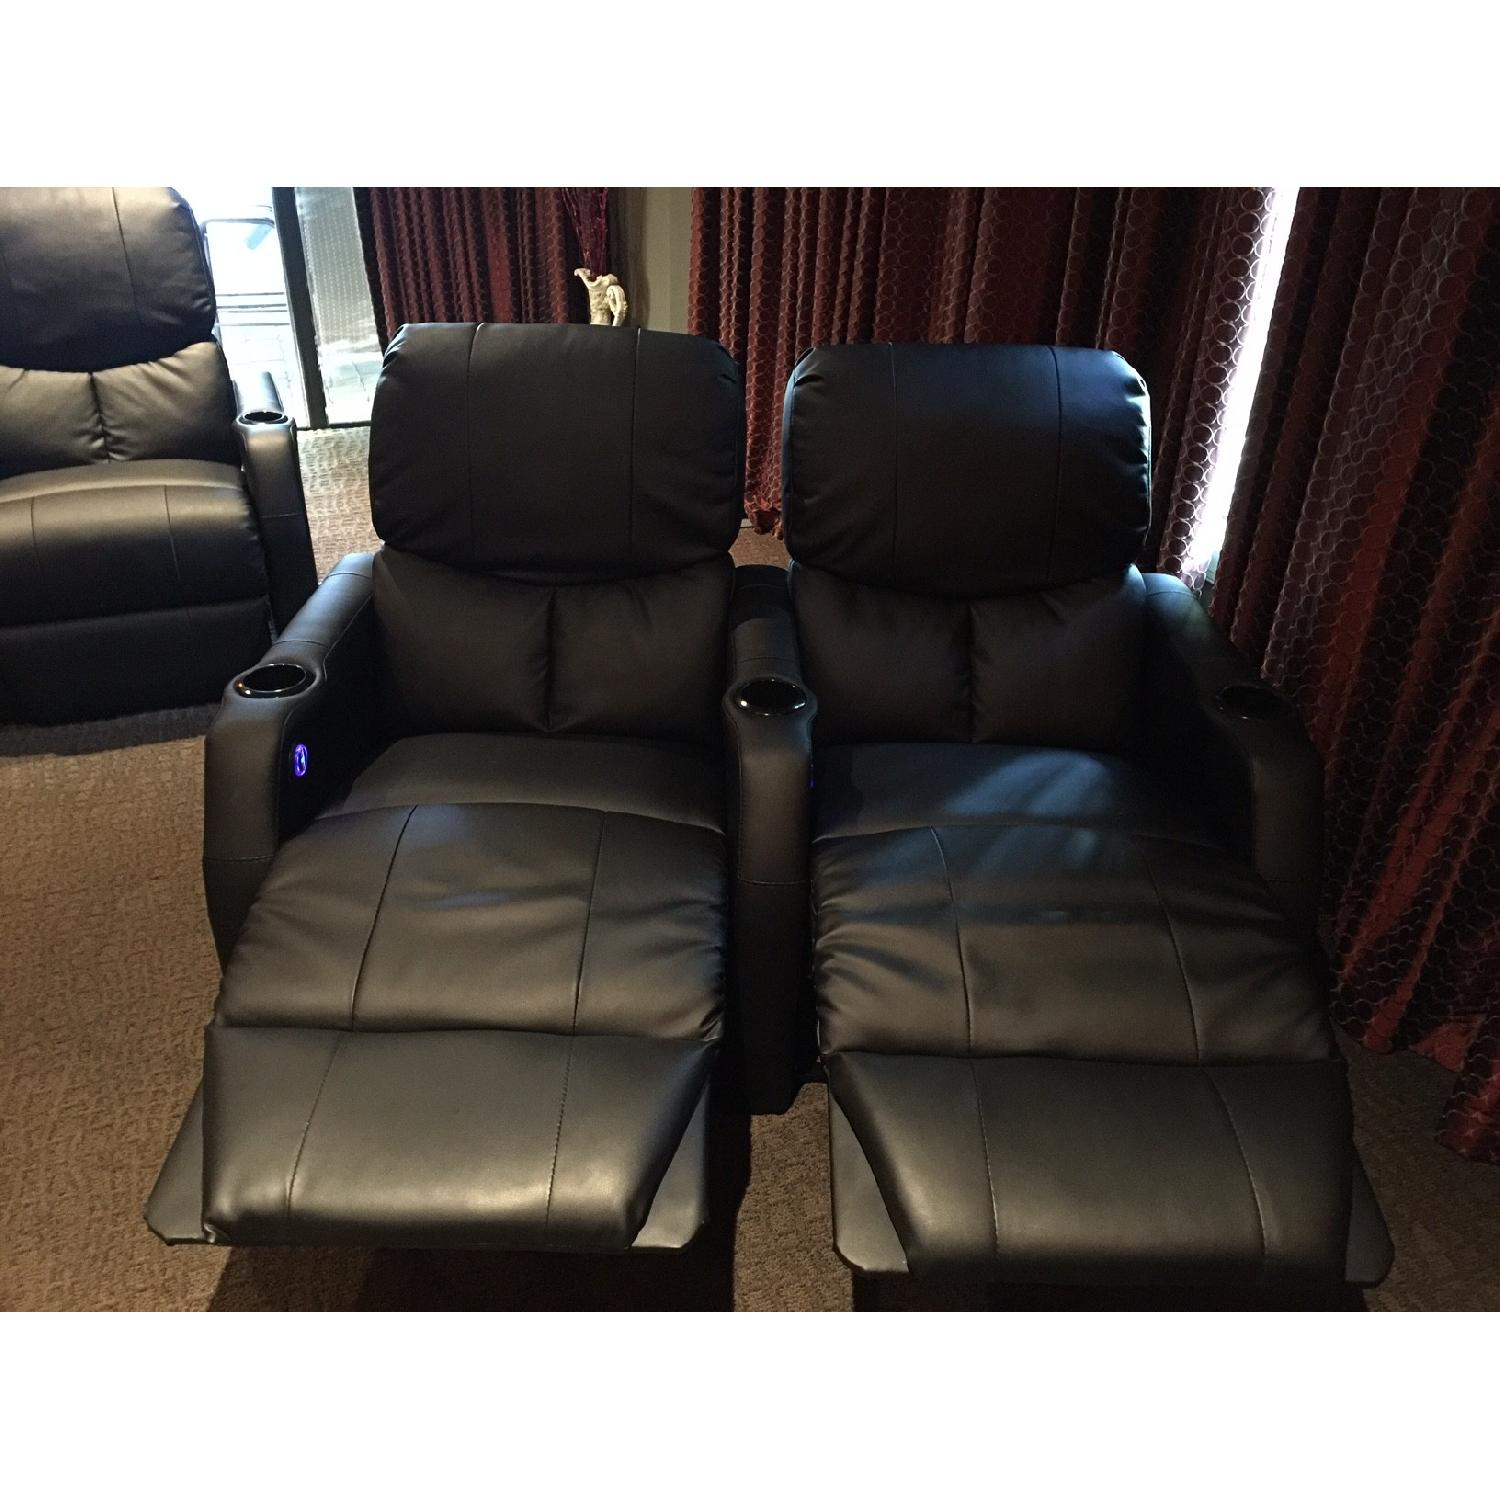 SeatCraft Home Theater Recliners - image-5